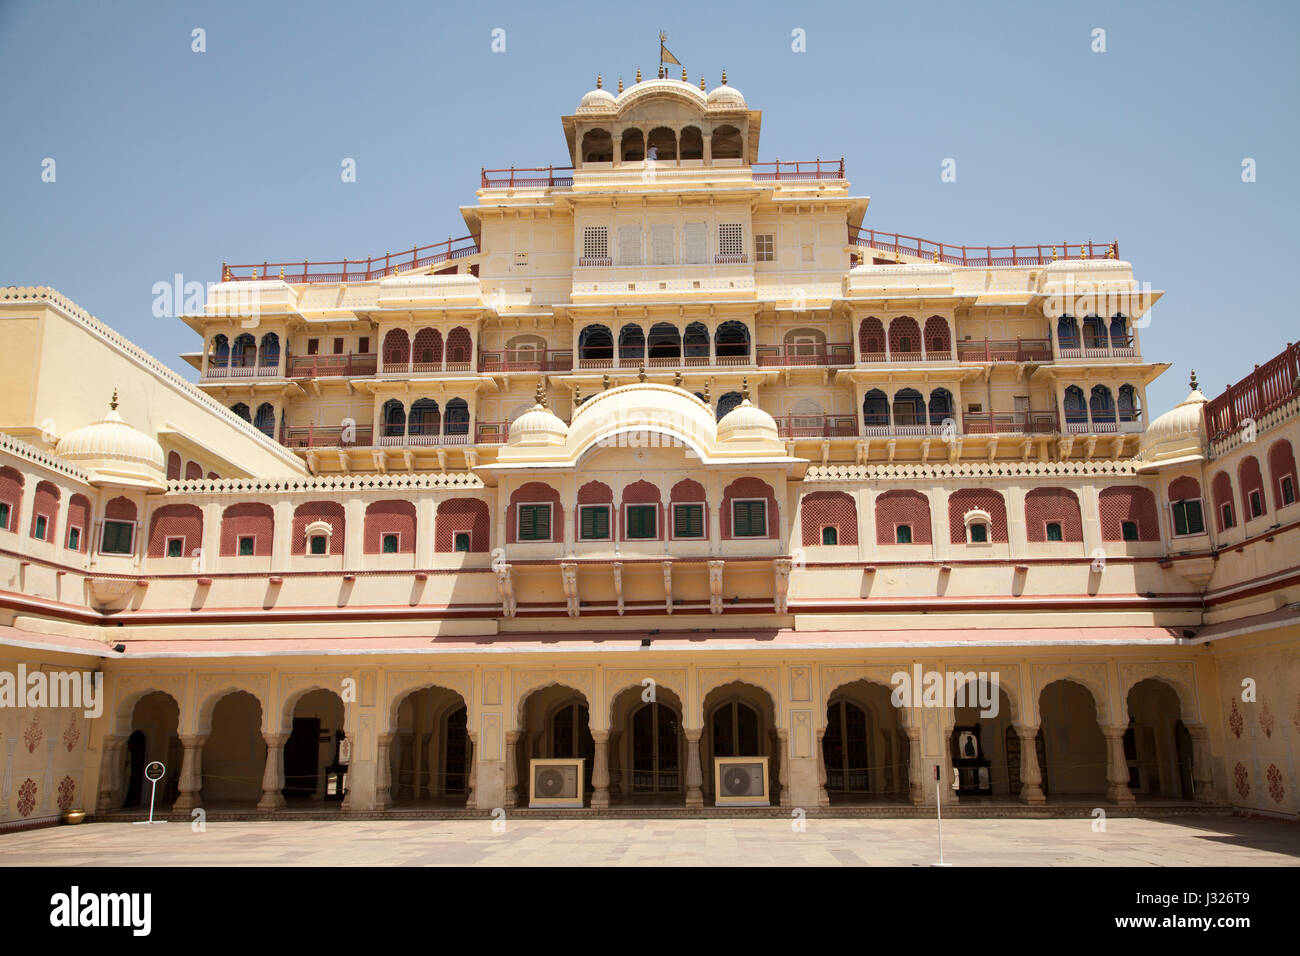 The Chandra Mahal Palace, part of the City Palace of Jaipur in Rajasthan, India. - Stock Image